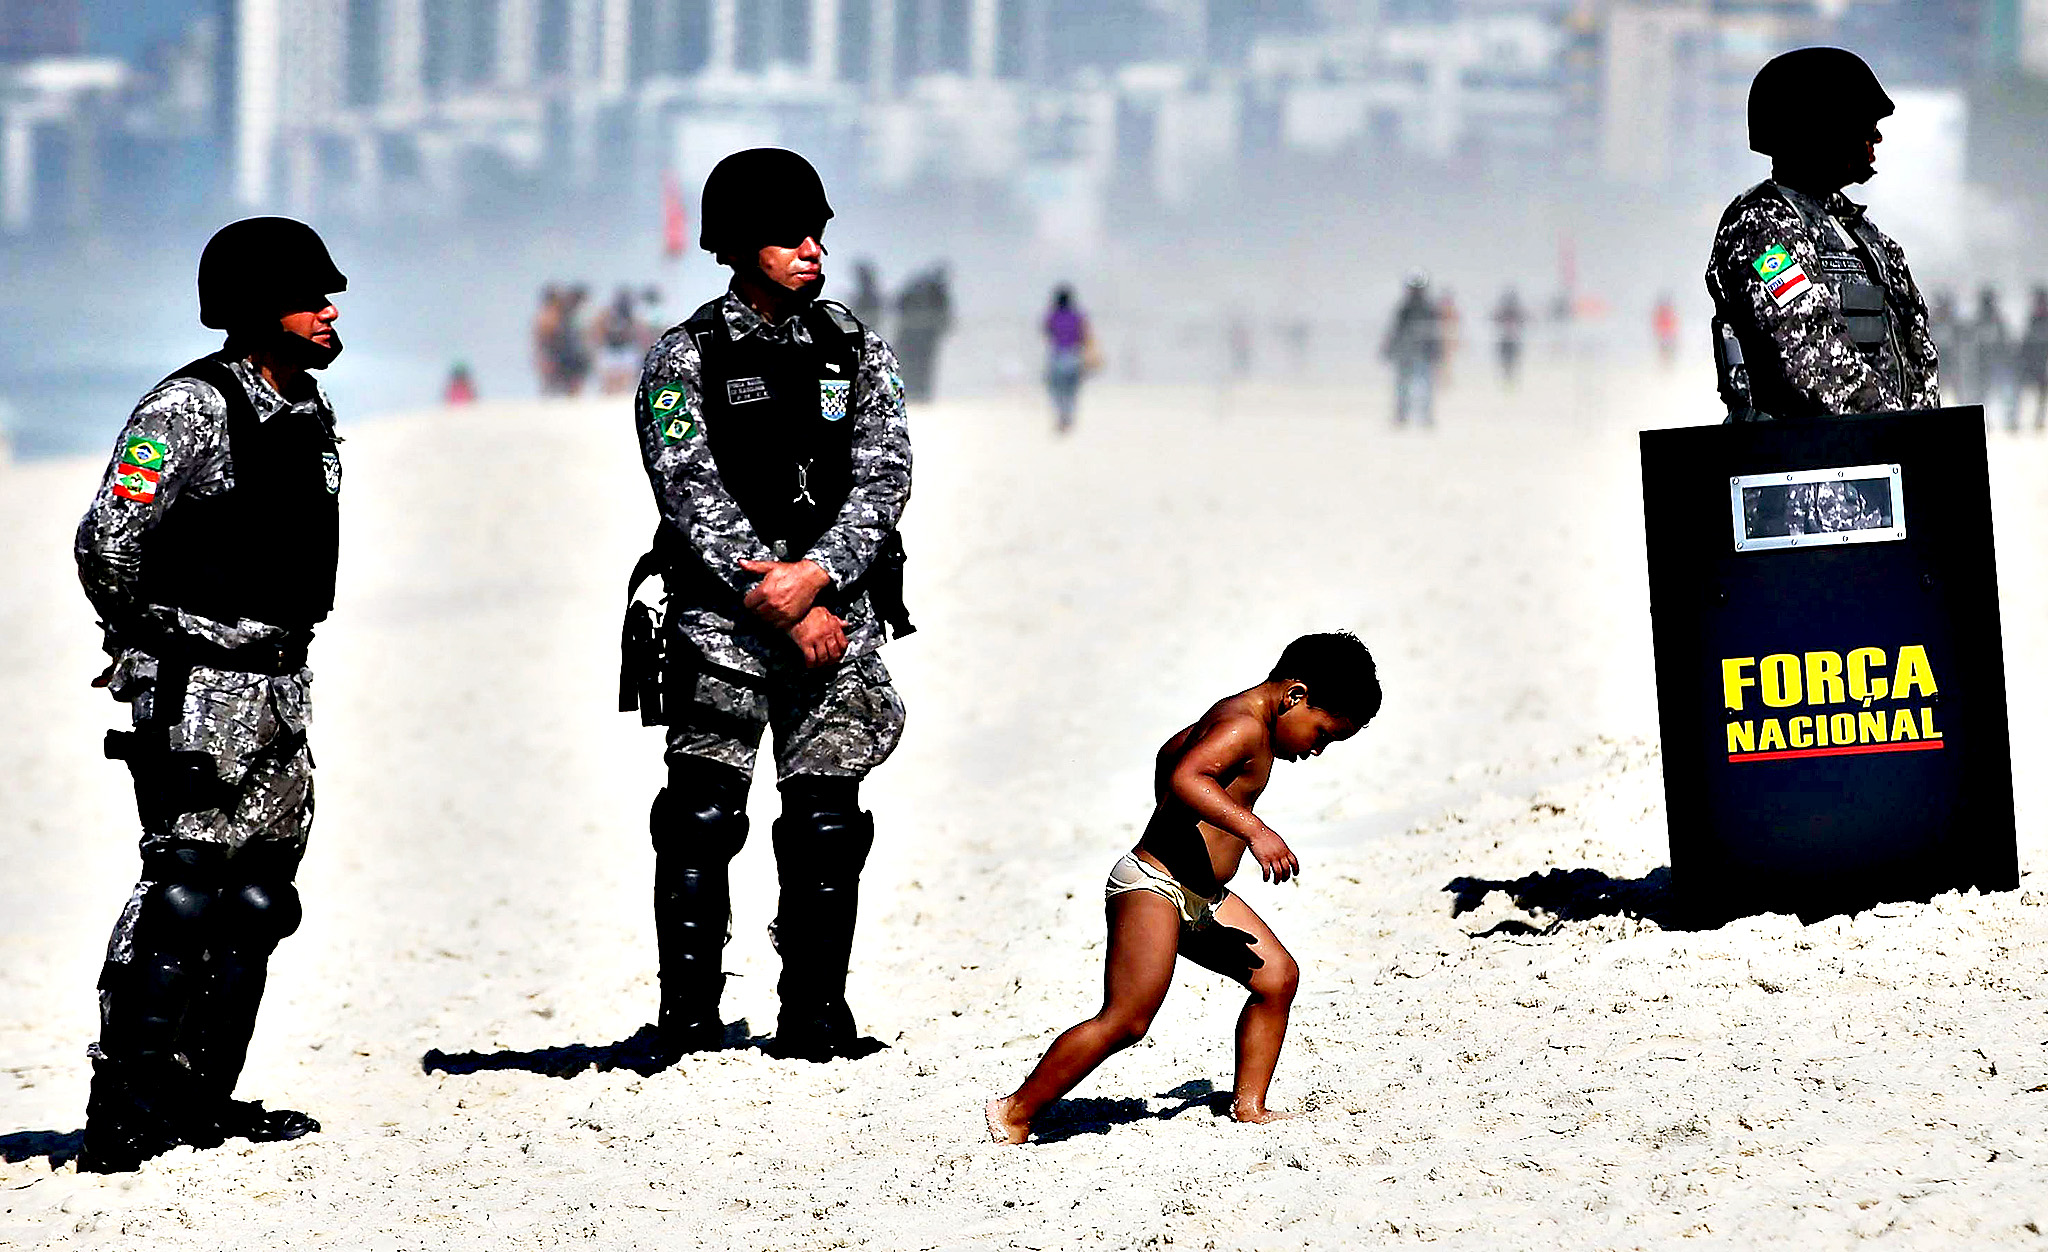 A boy walks past military police standing guard outside the seafront Windsor Barra hotel before the start of an auction of one of the world's biggest offshore oil finds on Monday in Rio de Janeiro, Brazil. Brazil is auctioning its Libra offshore oilfield which holds between 8-12 billion barrels of oil and protesters are demonstrating outside the hotel against the participation of foreign oil companies.